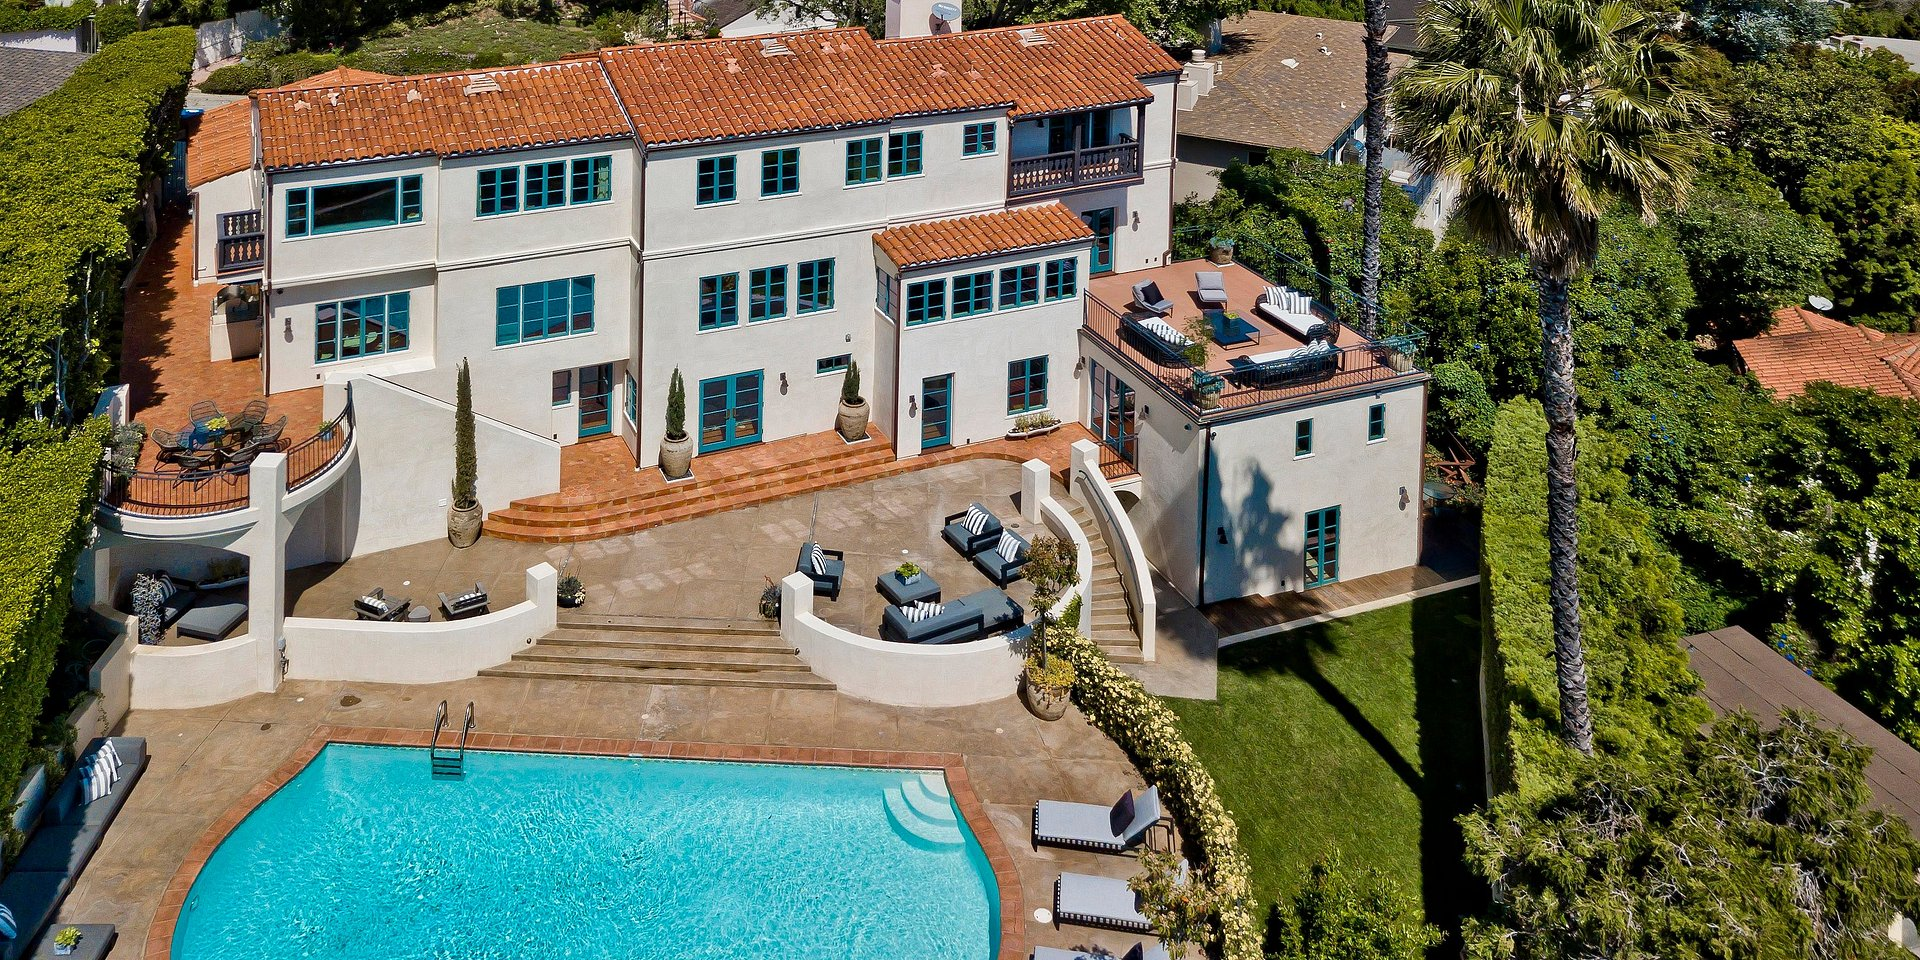 Coldwell Banker Residential Brokerage Lists Los Angeles Property for $4.595 Million